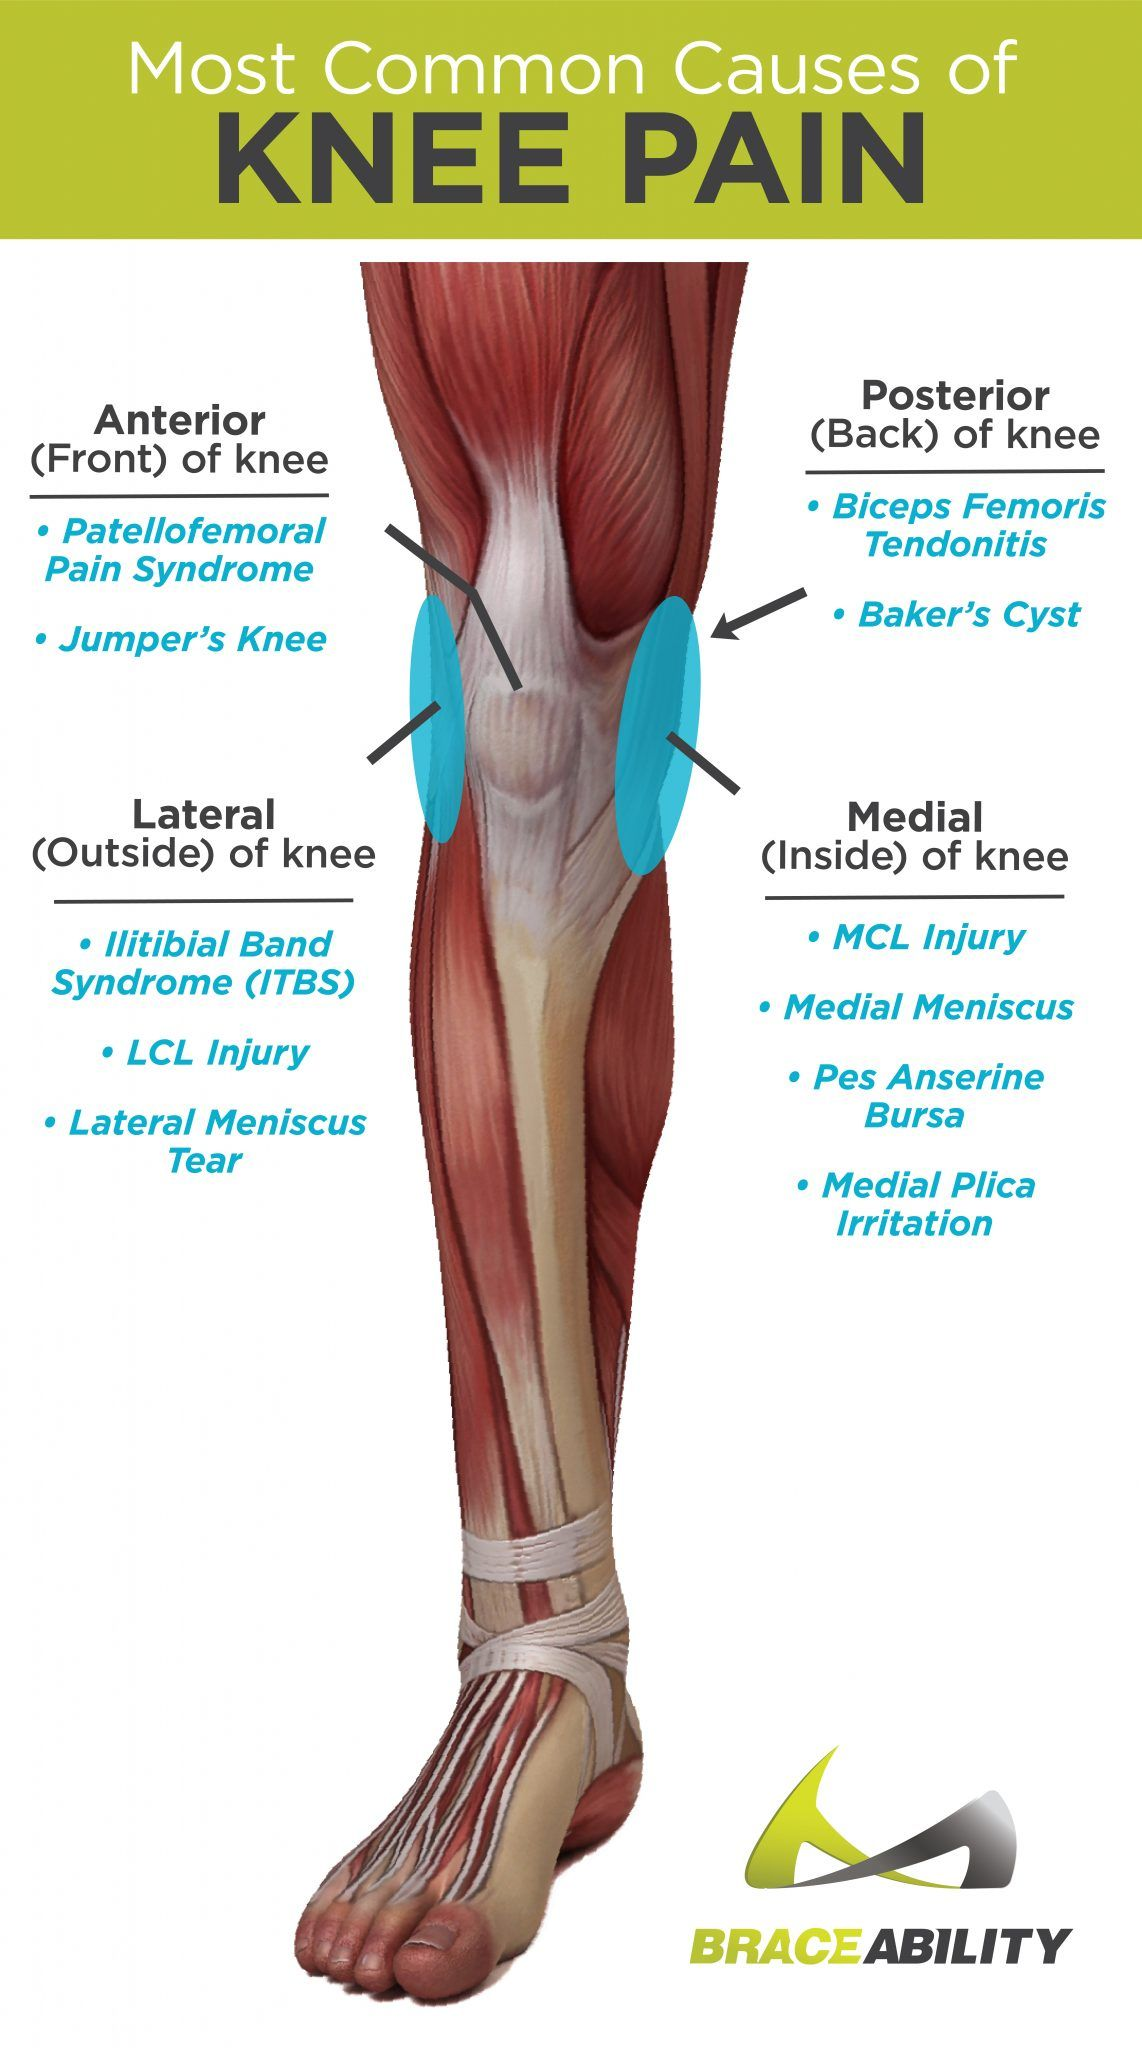 The Most Common Causes Of Anterior Posterior Medial And Lateral Knee Pain